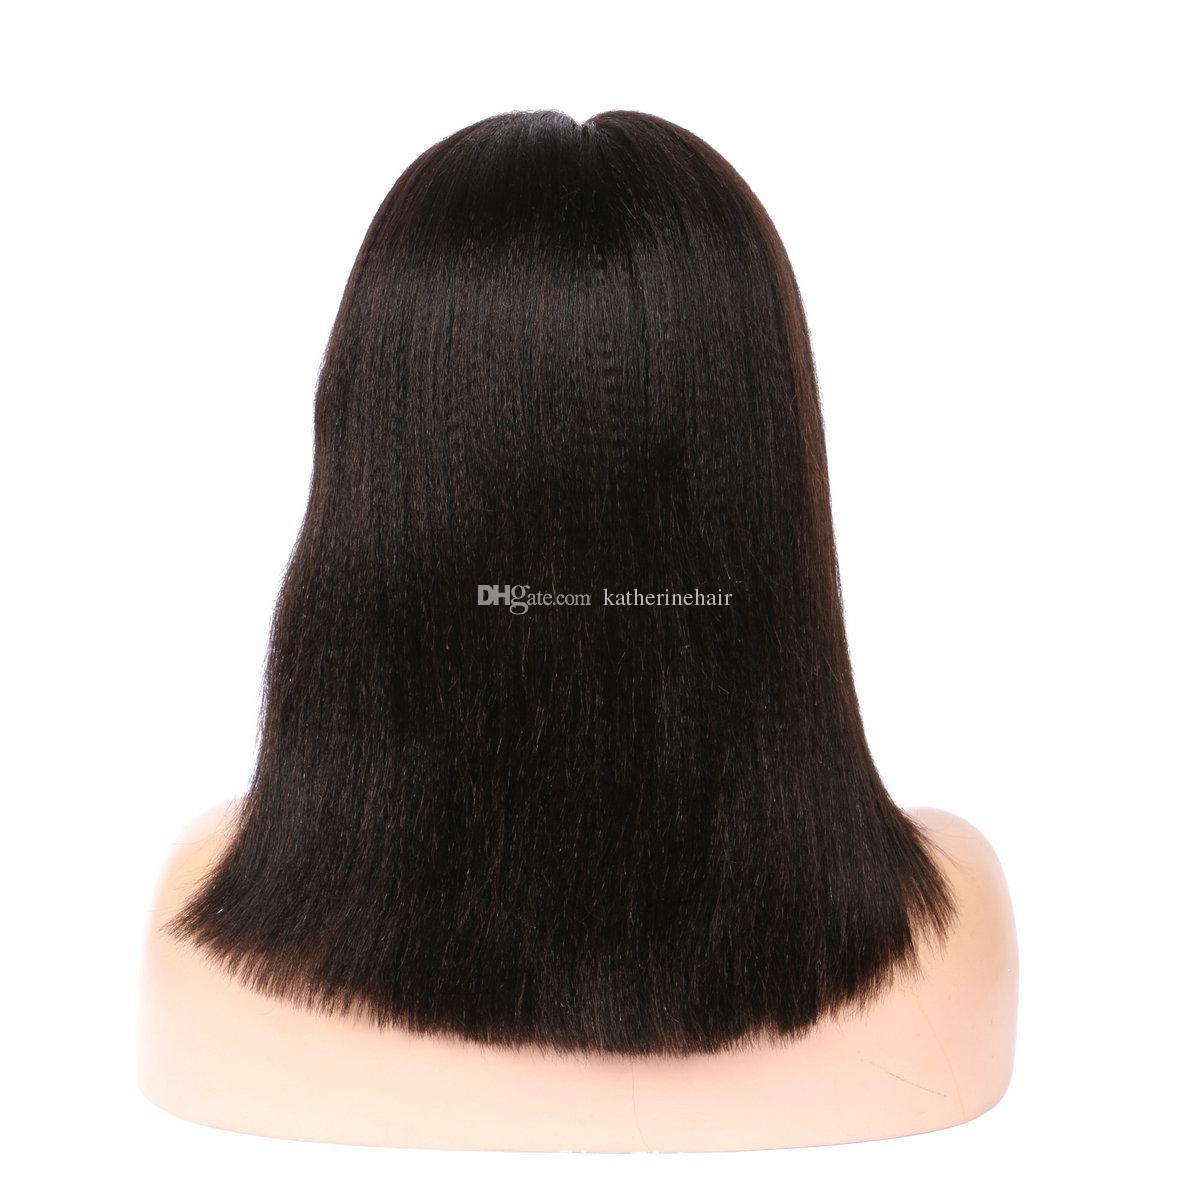 human hair bob wig sort cut front lace coarse yaki brazilian malaysian hair kinky straight glueless full lace wigs for black women